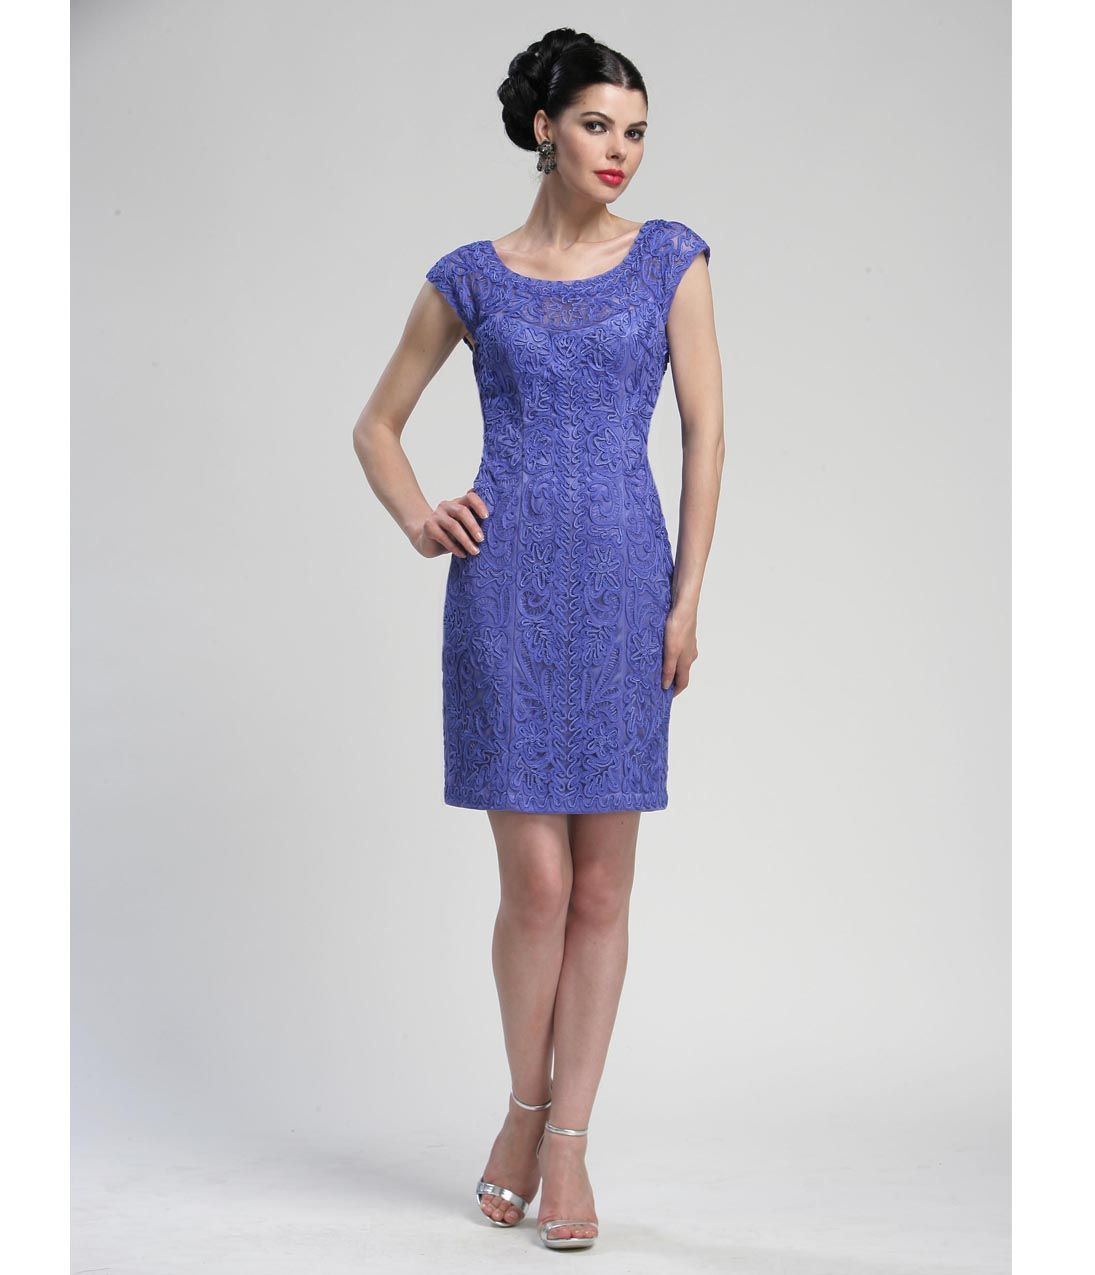 Periwinkle Lace Cap Sleeve Cocktail Dress - Unique Vintage ...